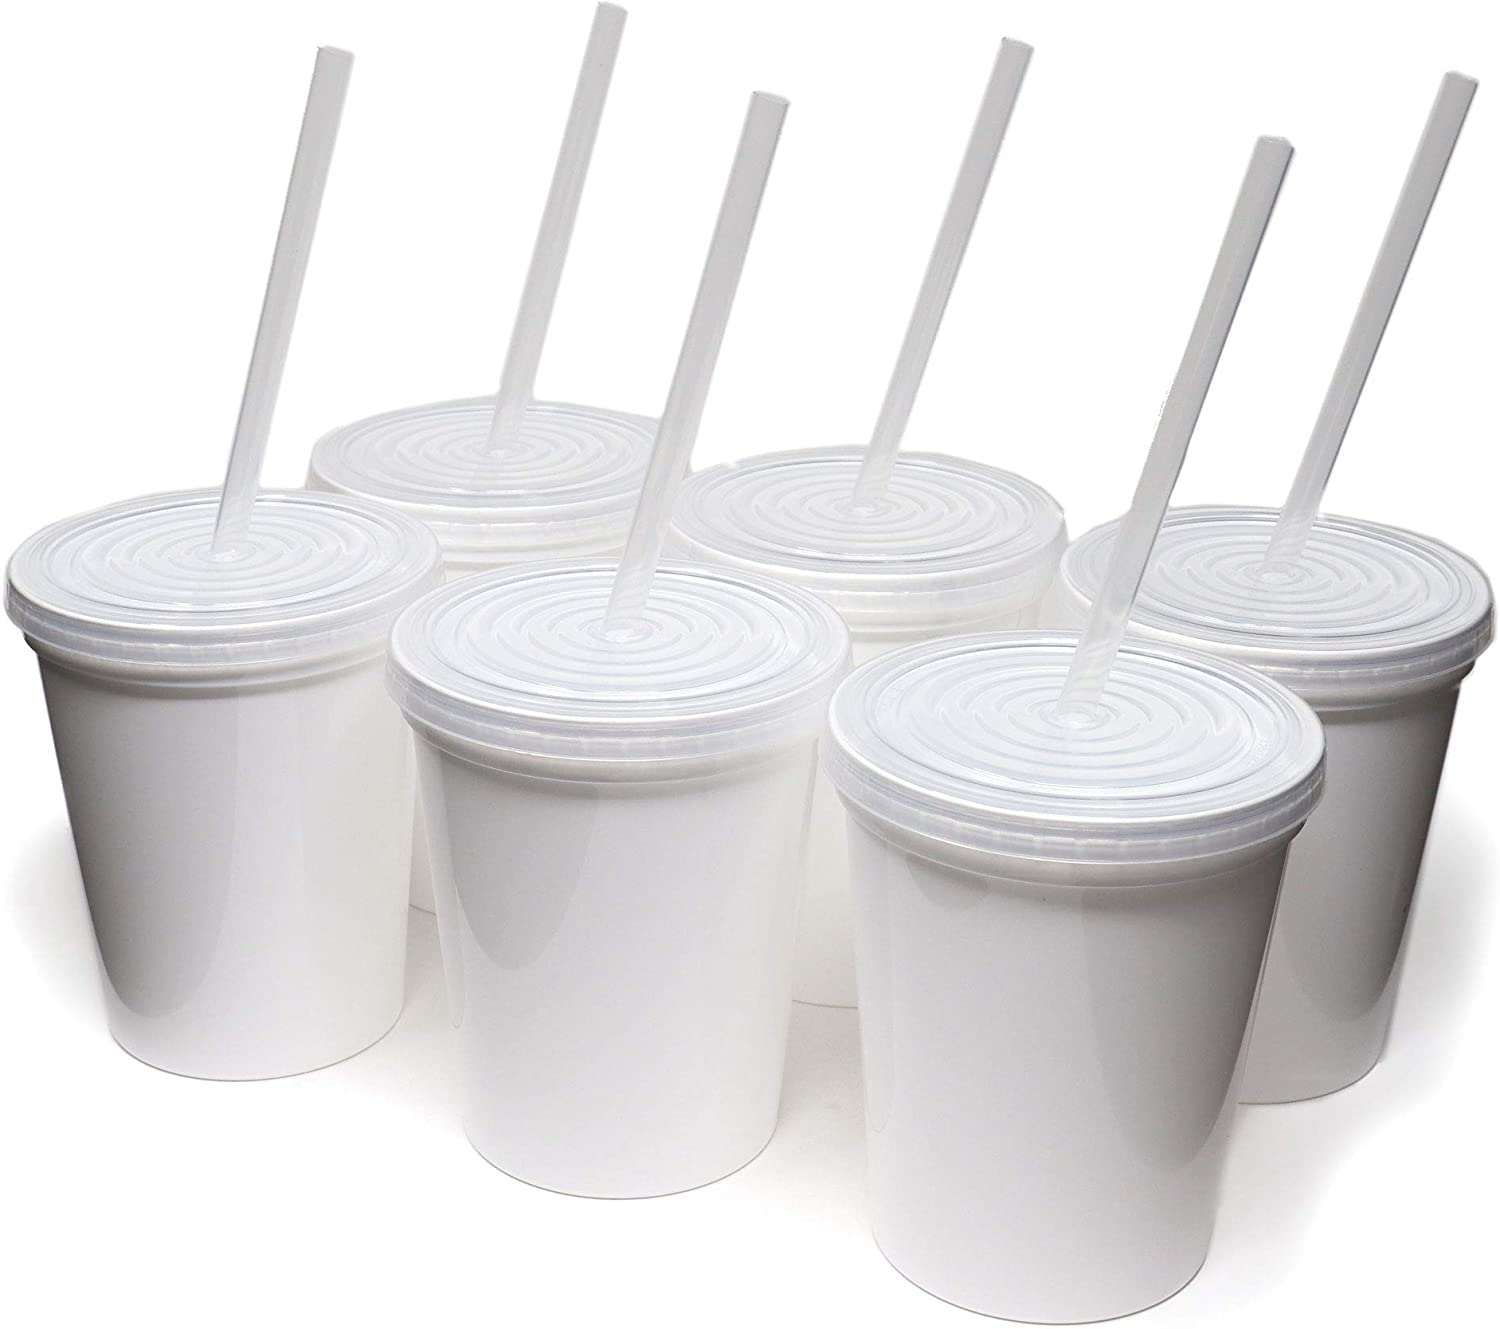 Rolling Sands 16oz Reusable Plastic Stadium White Cups with Lids, 6 Pack, USA Made; Plastic Tumblers and Lids, Includes 6 Reusable Straws; Top Shelf Dishwasher